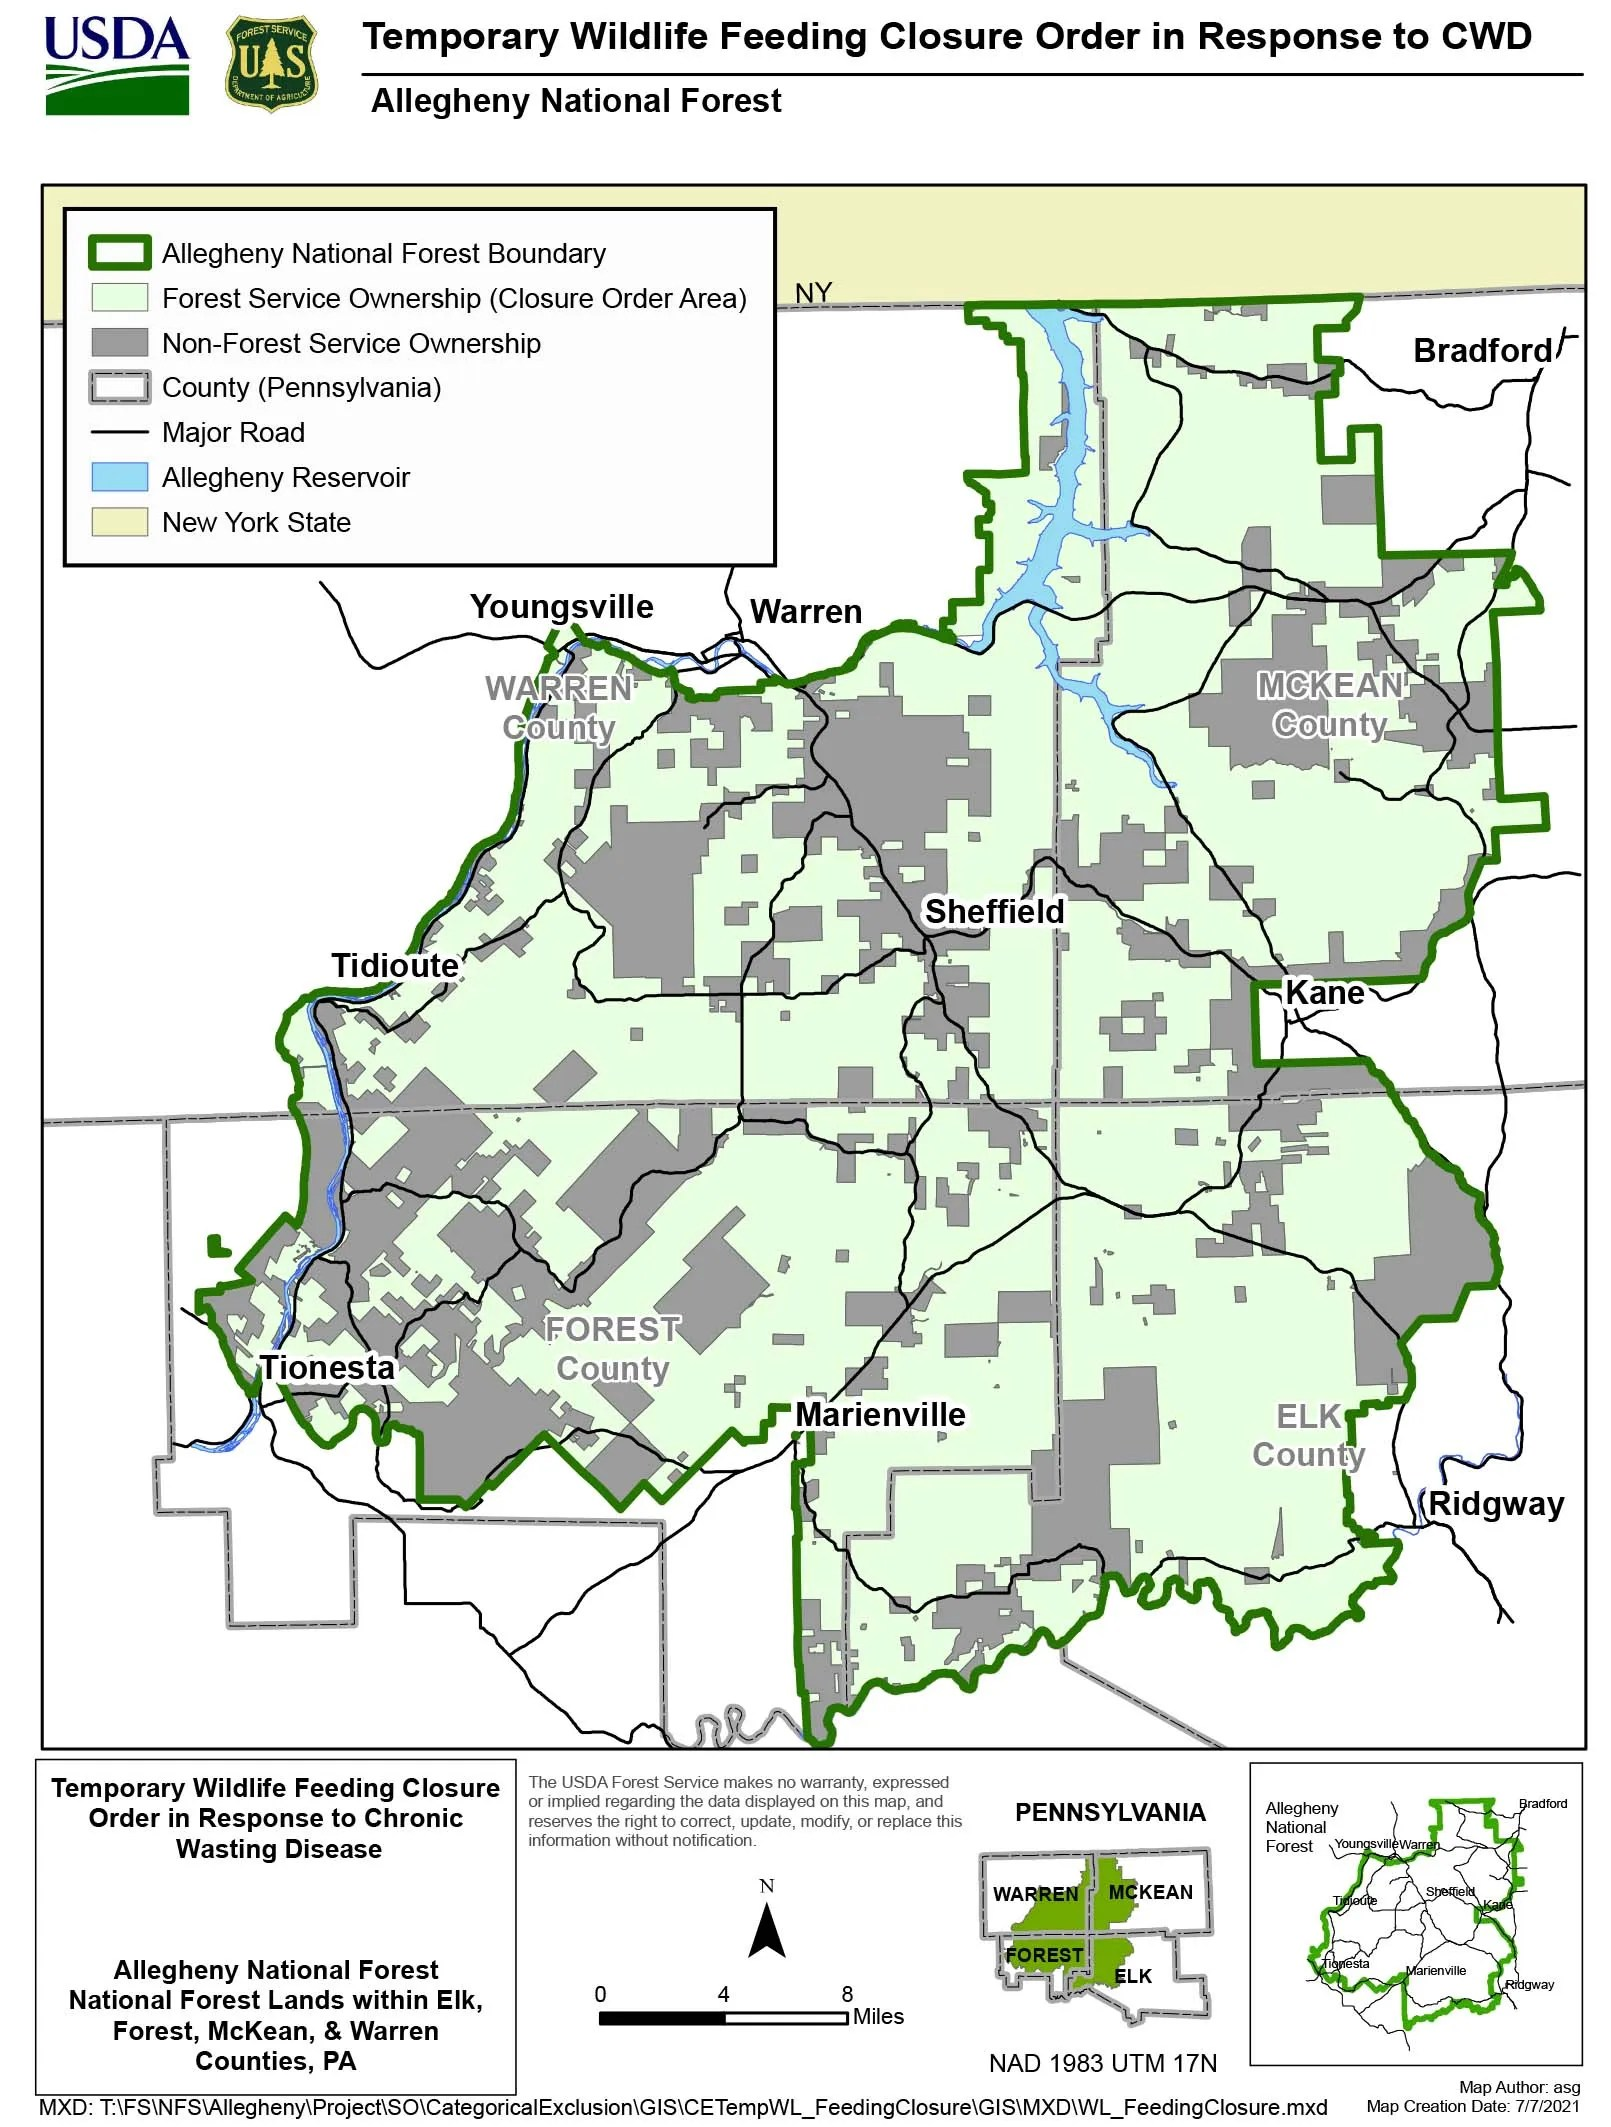 This map shows a proposed area to temporarily ban feeding wildlife in the Allegheny National Forest in Warren, McKean, Forest and Elk counties.